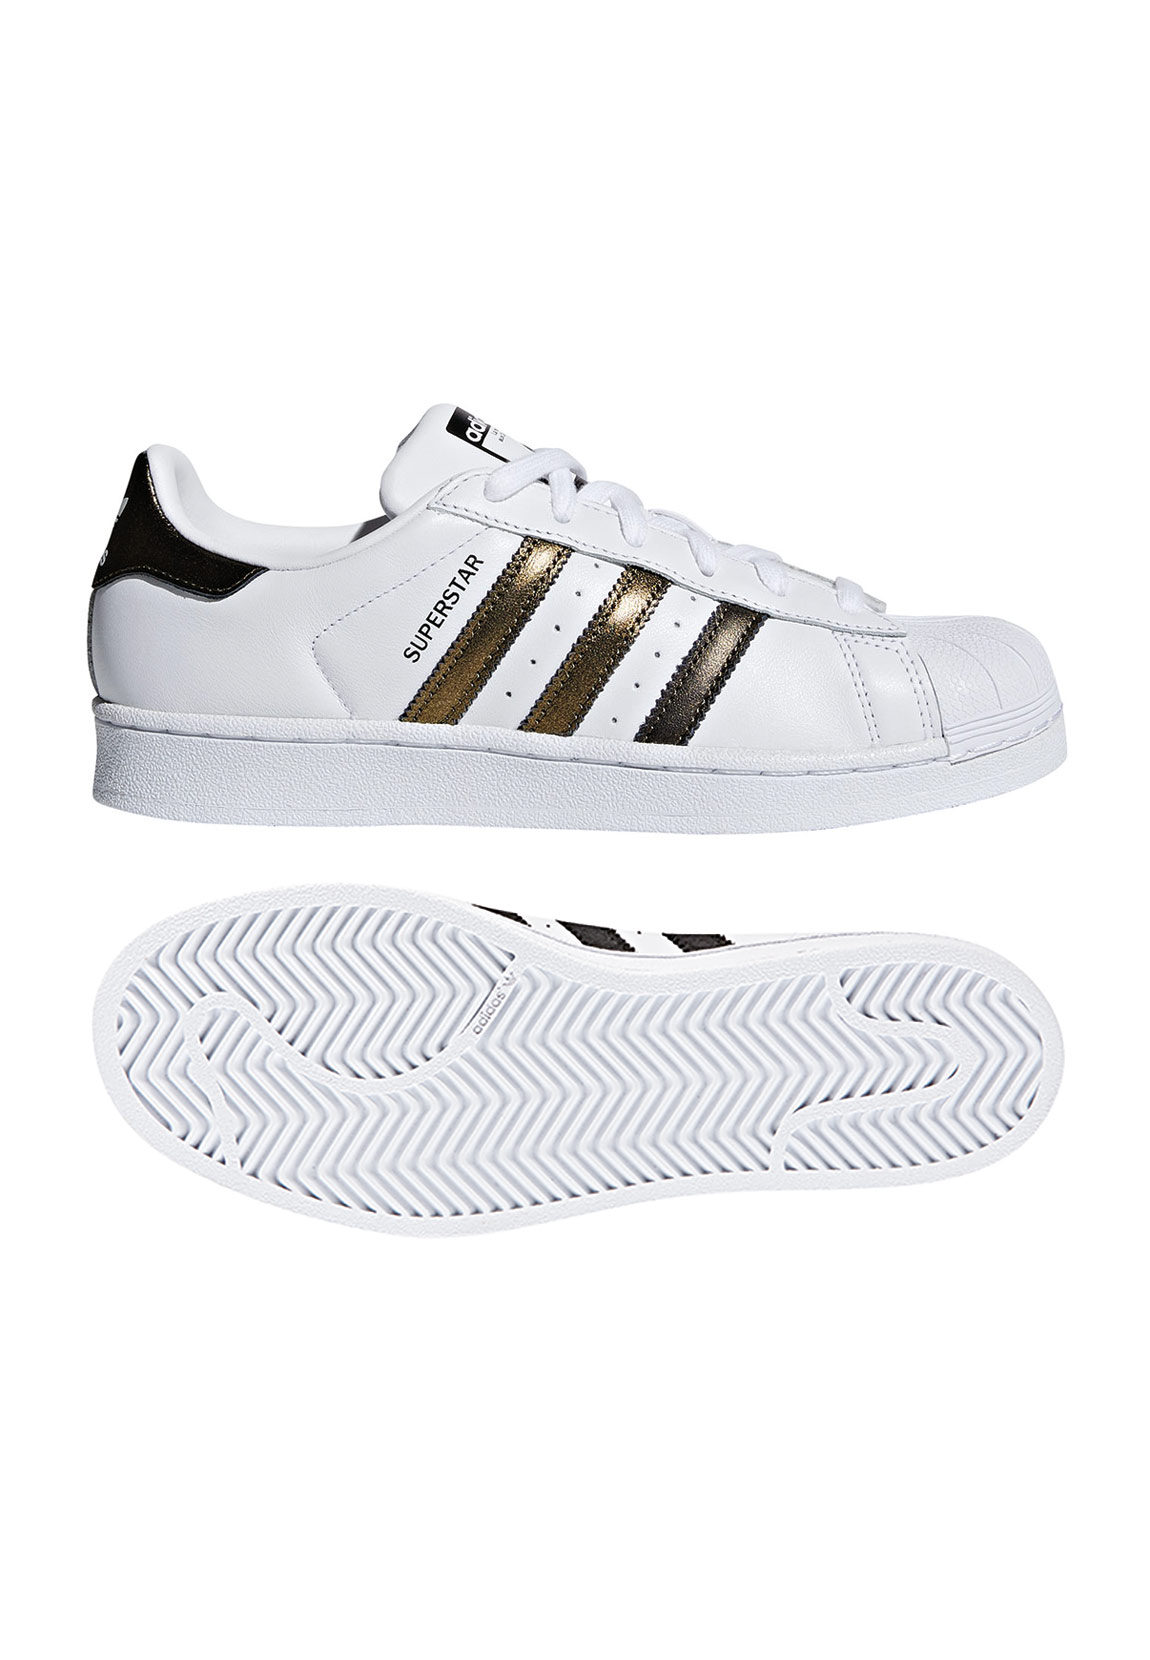 adidas Originals Damen Superstar Sneakers